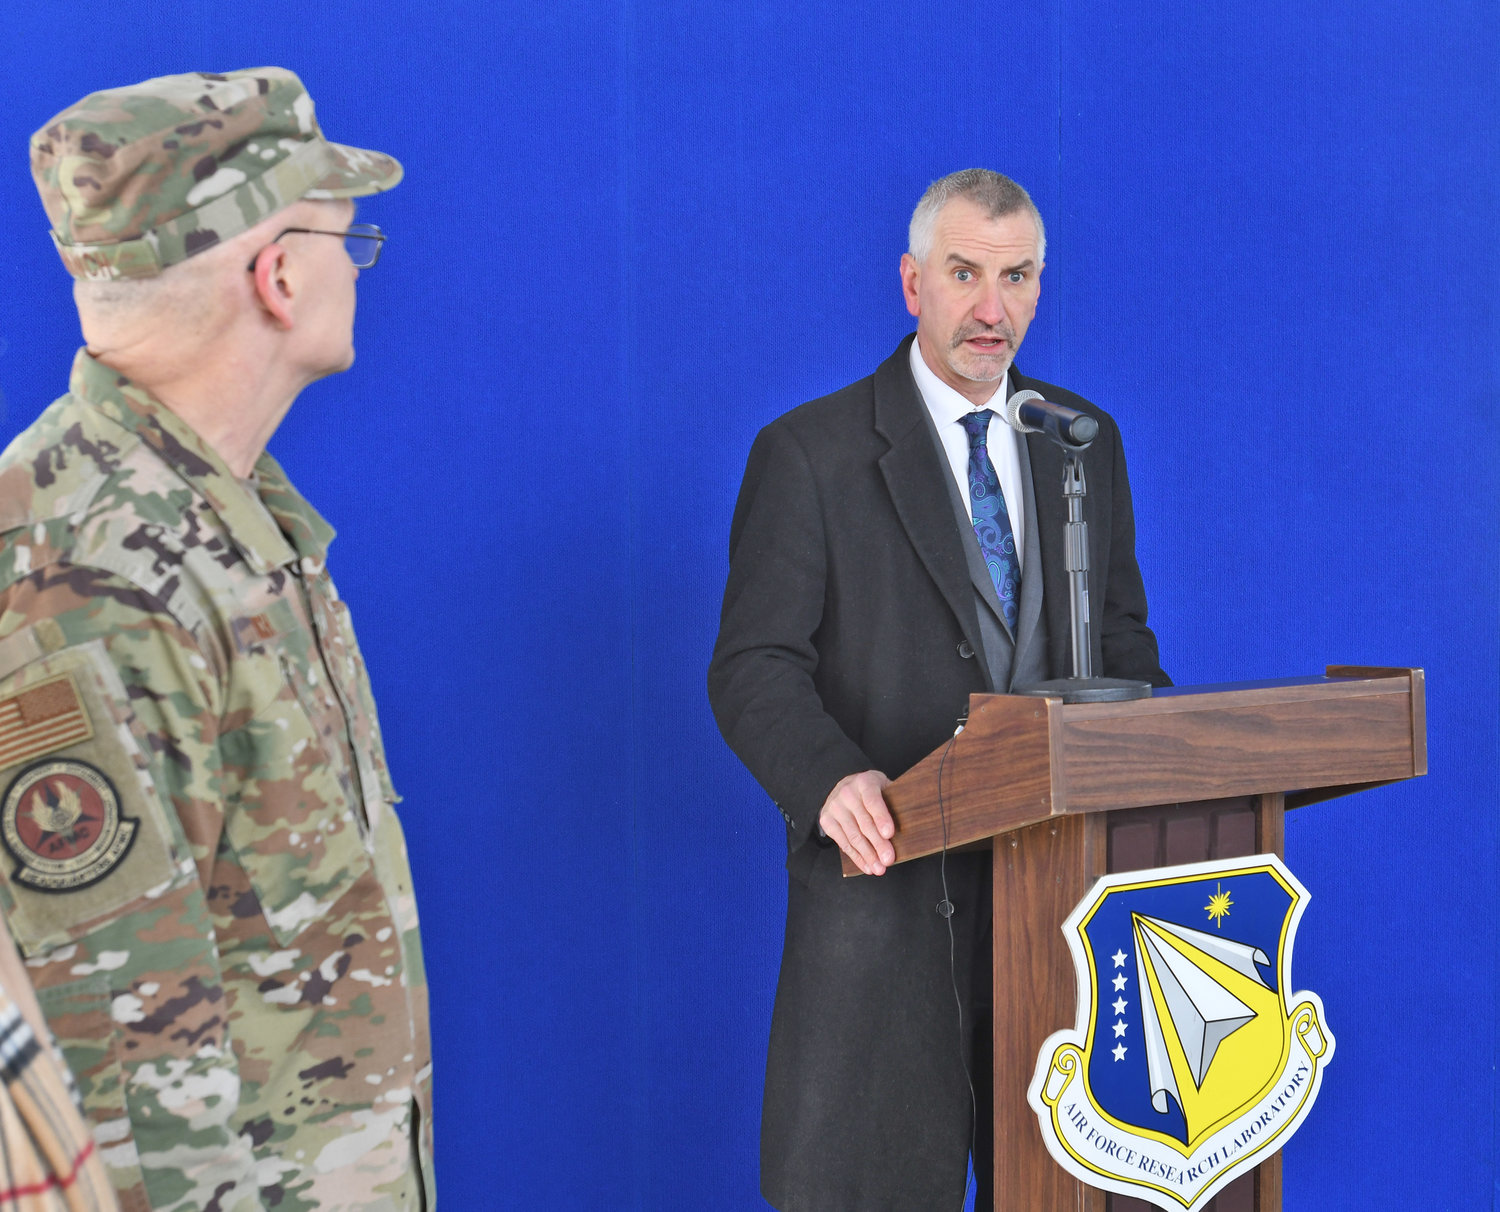 LAB'S ACTING DIRECTOR SPEAKS — Rome Lab acting Director Dr. Michael Hayduk addresses the audience during a groundbreaking ceremony Wednesday for a new perimeter security system at the lab. Looking on at left is four-star Gen. Arnold W. Bunch, Jr., commander of Air Force Materiel Command.